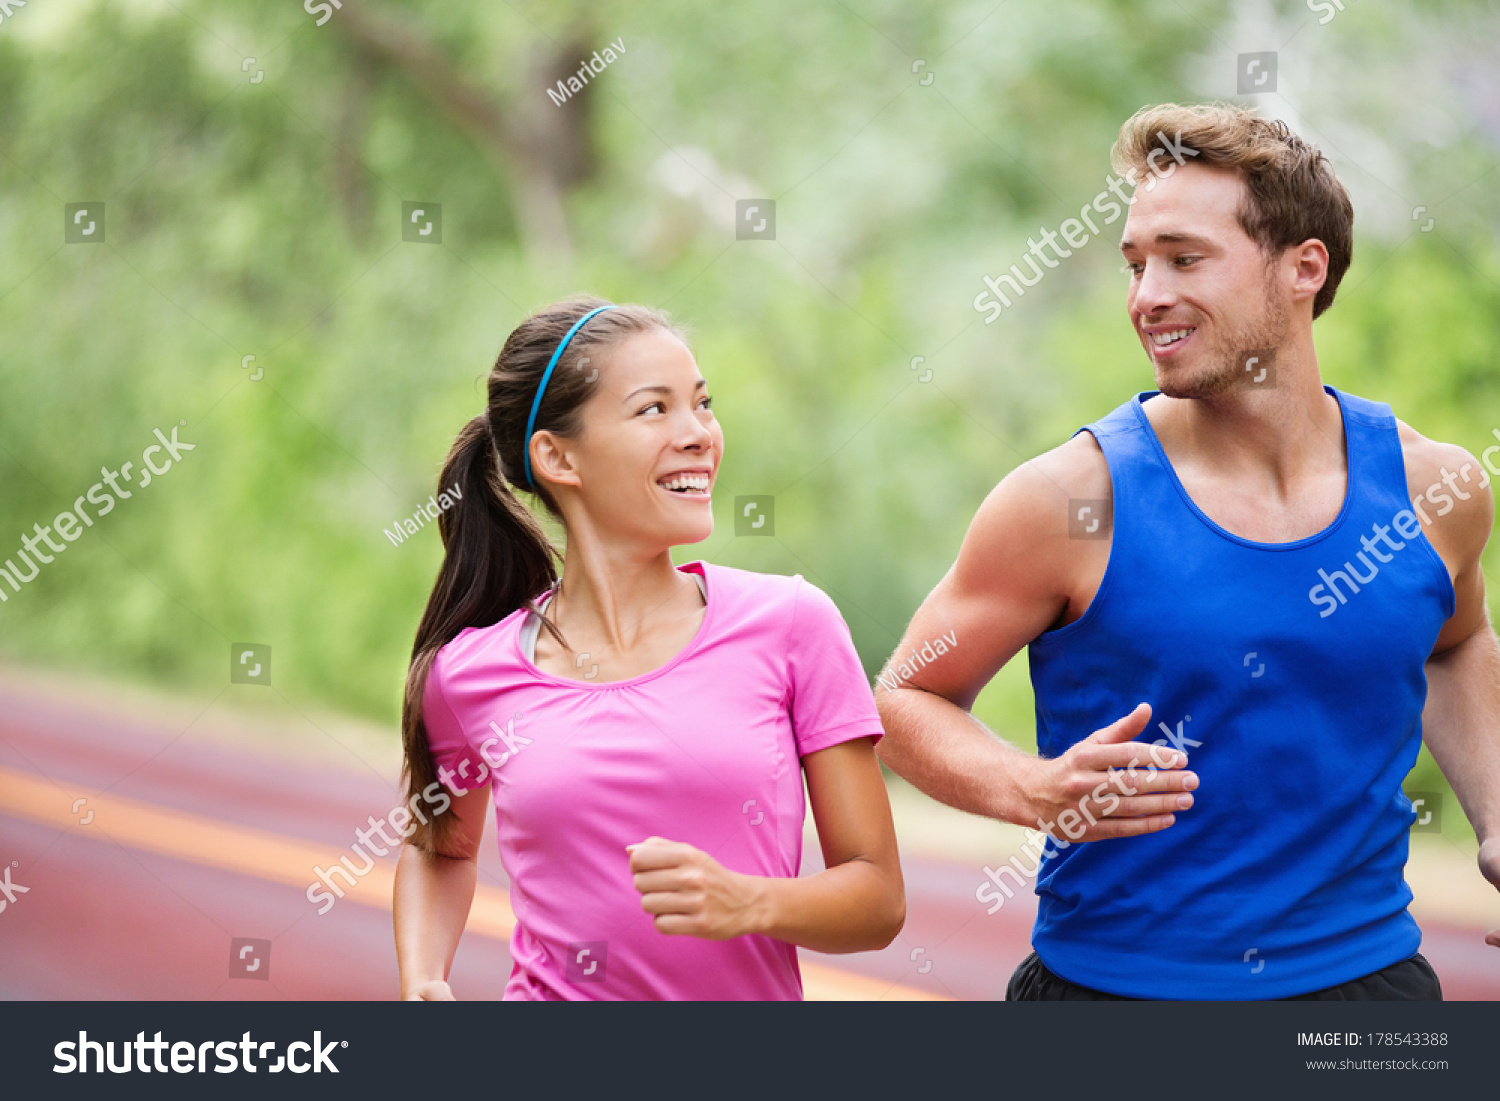 Healthy Lifestyle Running Fitness Couple Jogging Stock Photo